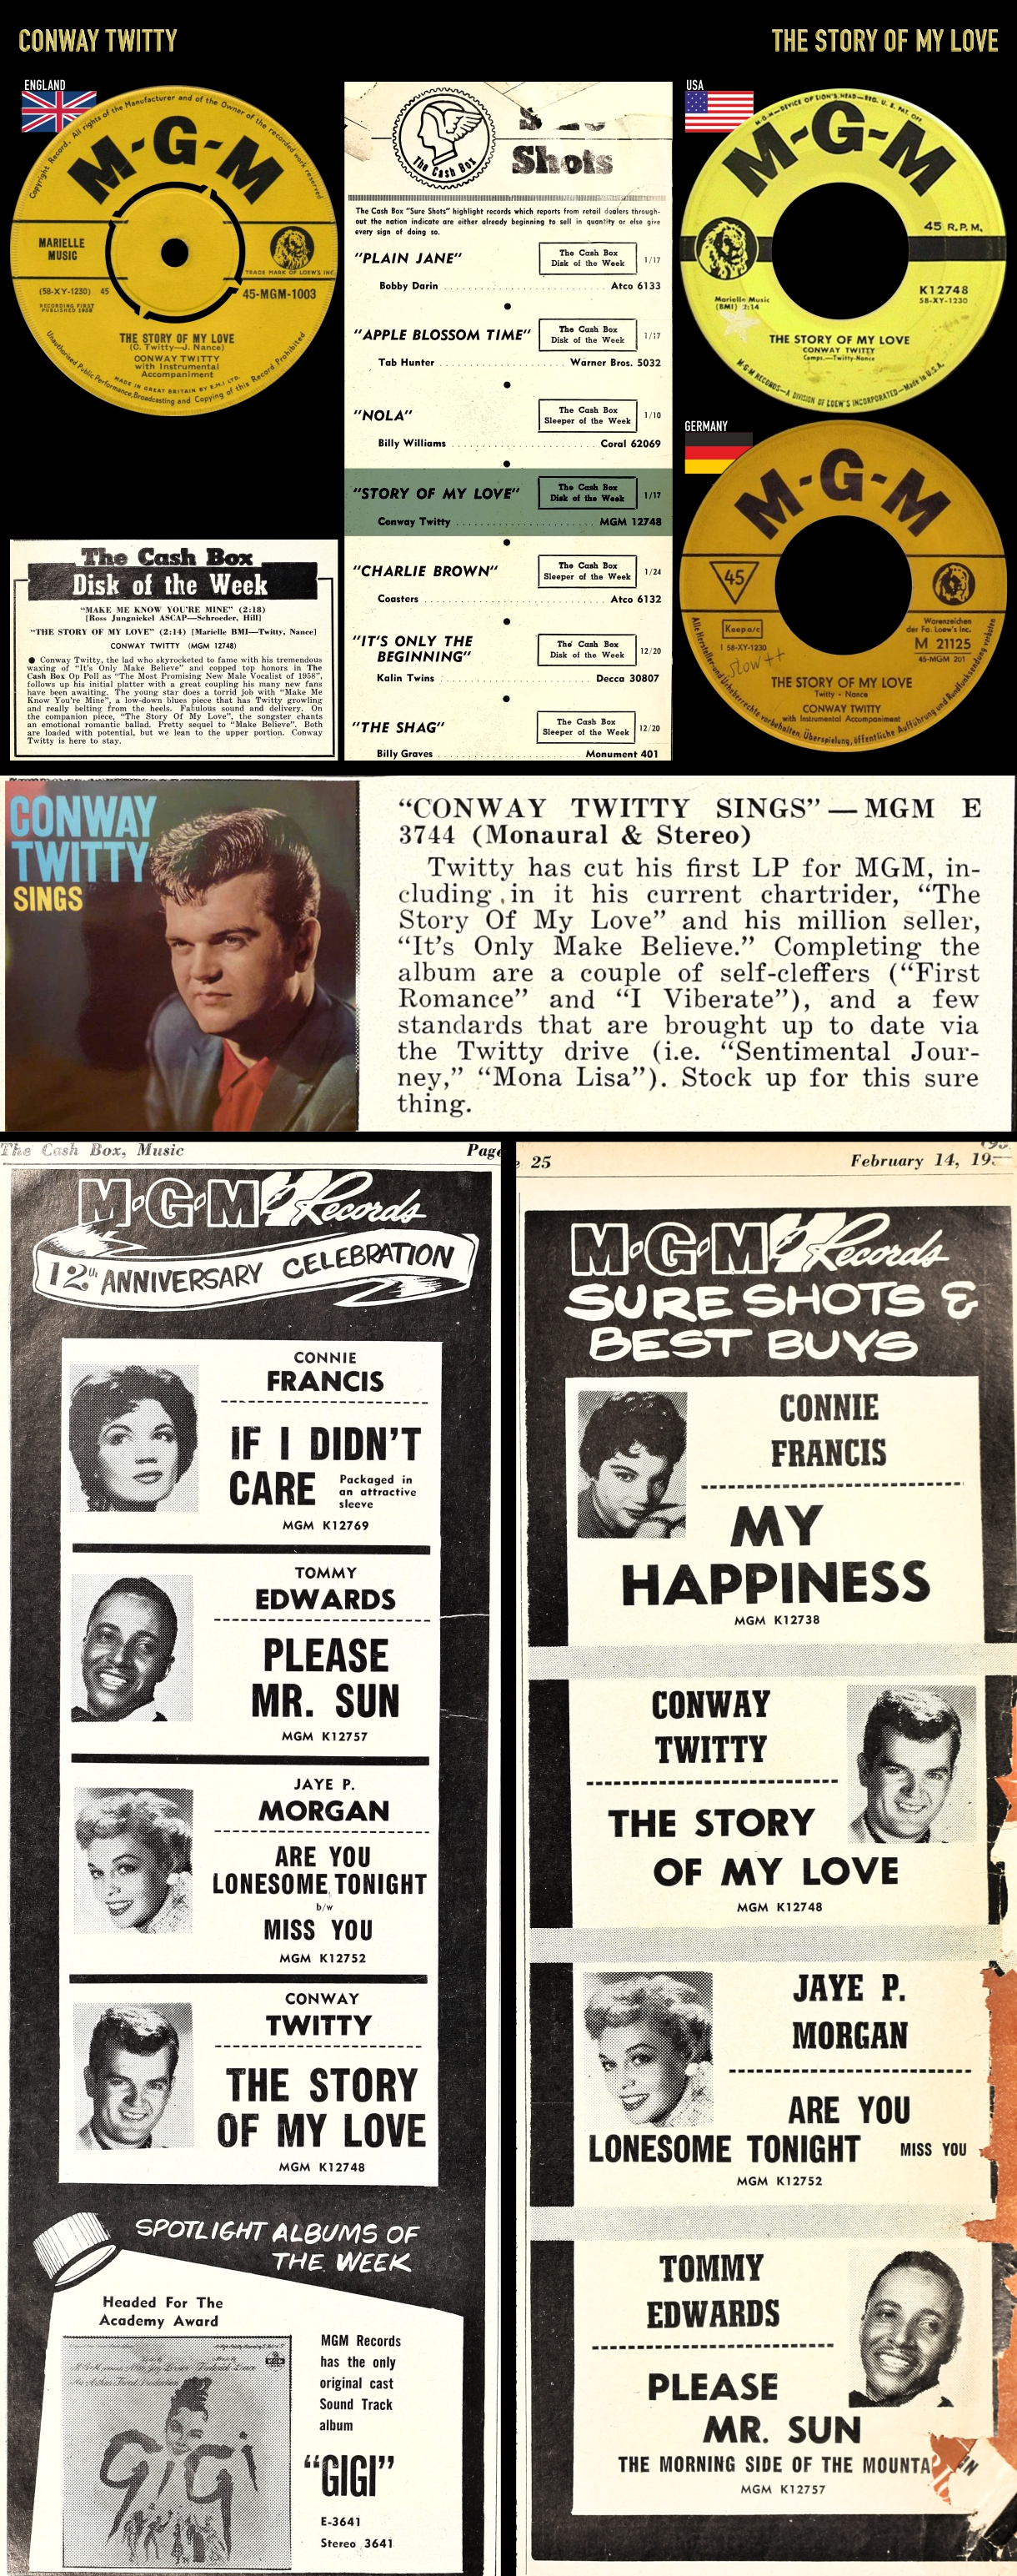 590124_Conway Twitty_The Story Of My Love_#